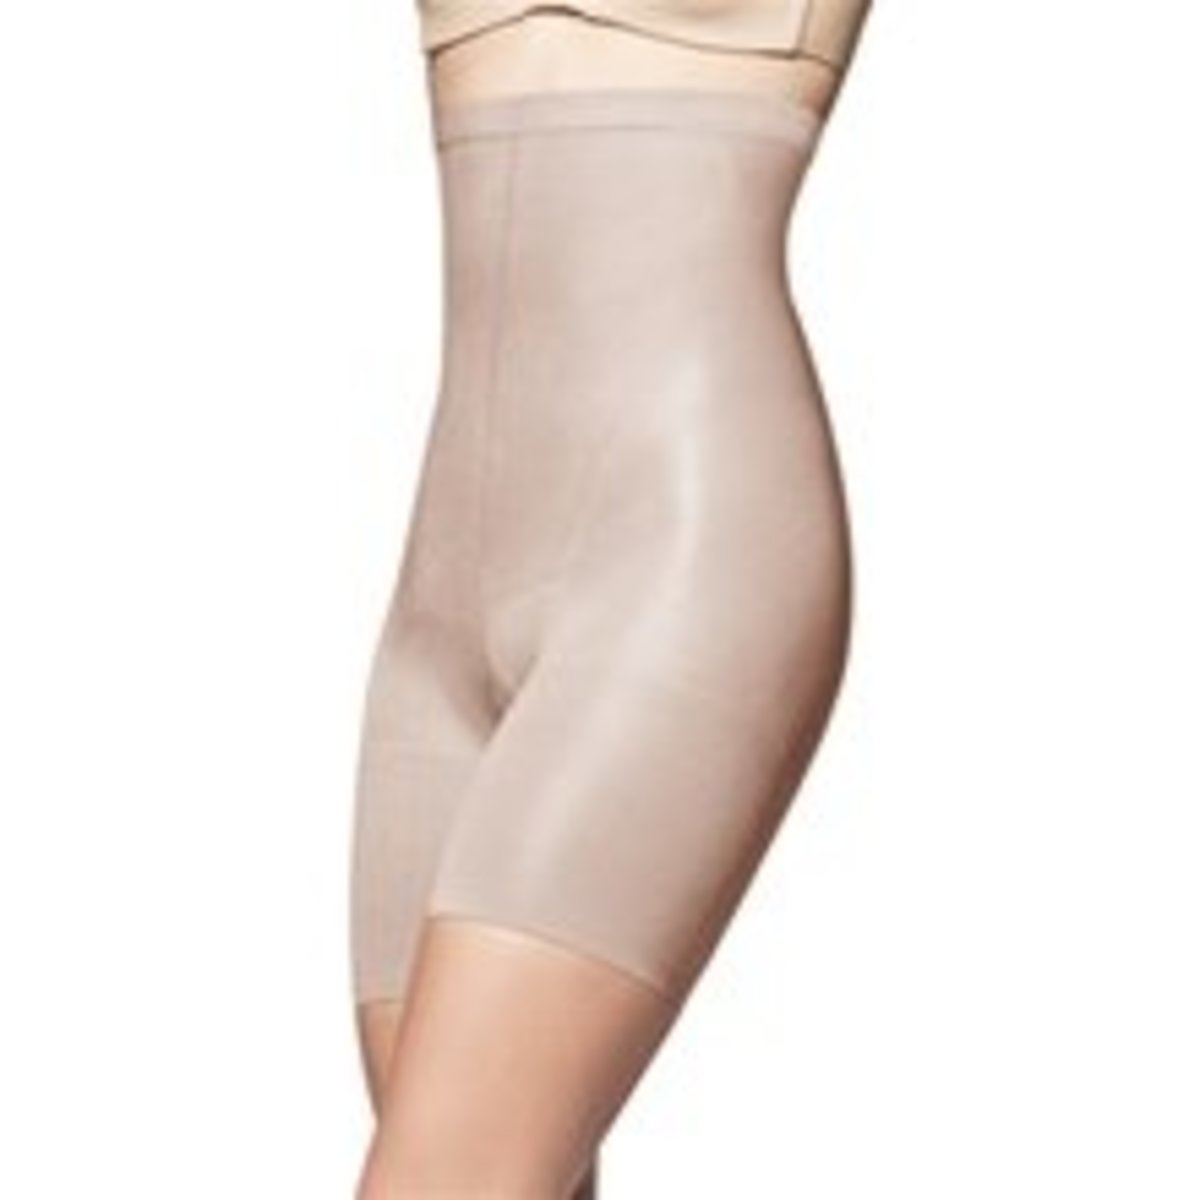 Girdles for Women:  Tips on Choosing the Best Compression Underwear